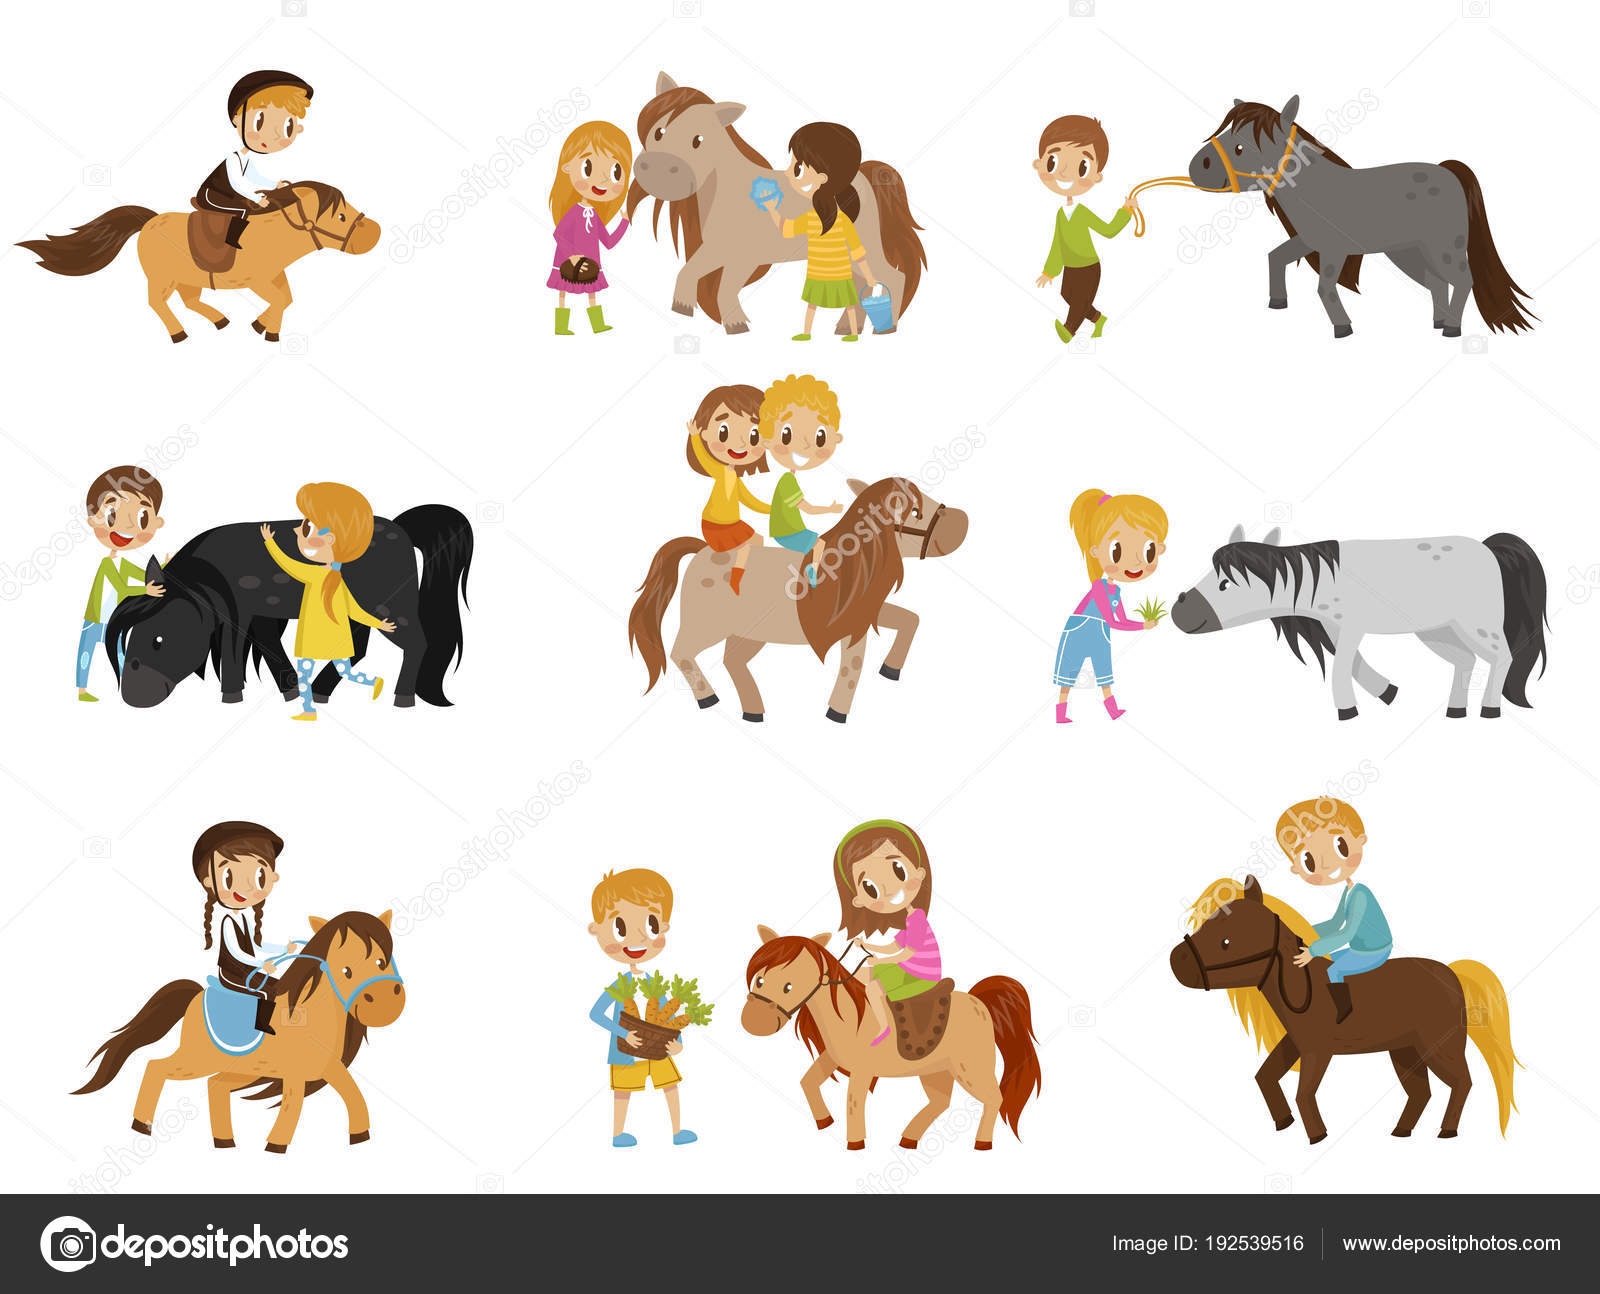 Funny Little Kids Riding Ponies And Taking Care Of Their Horses Set Equestrian Sport Vector Illustrations Stock Vector C Happypictures 192539516